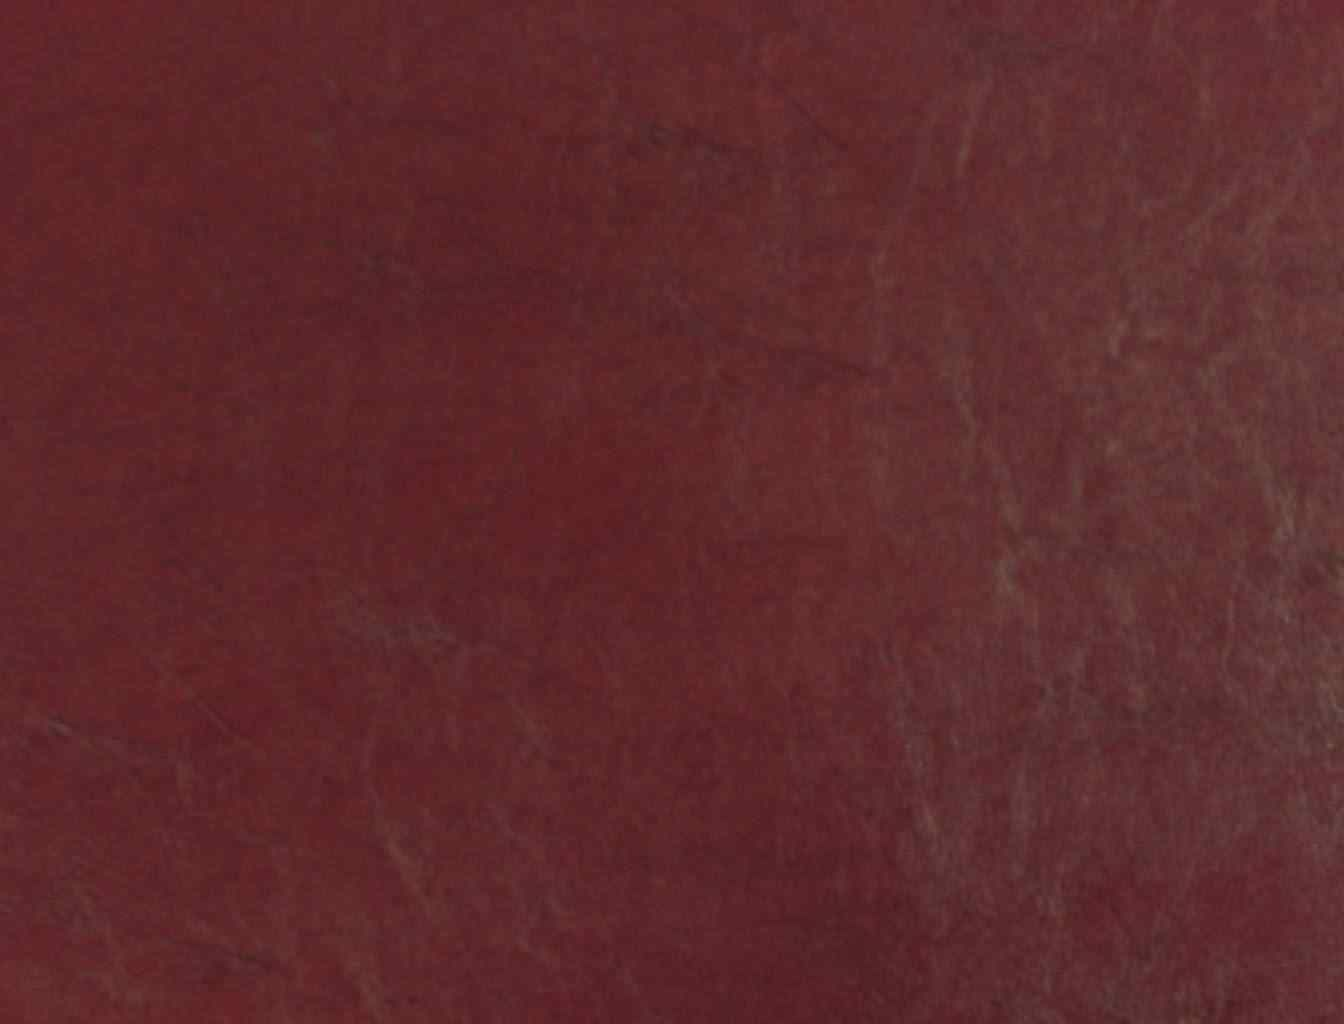 Burgundy Vinyl Upholstery Fabric Waterproof Cordovan Interior Paint Exterior Paint Paint Cleanup